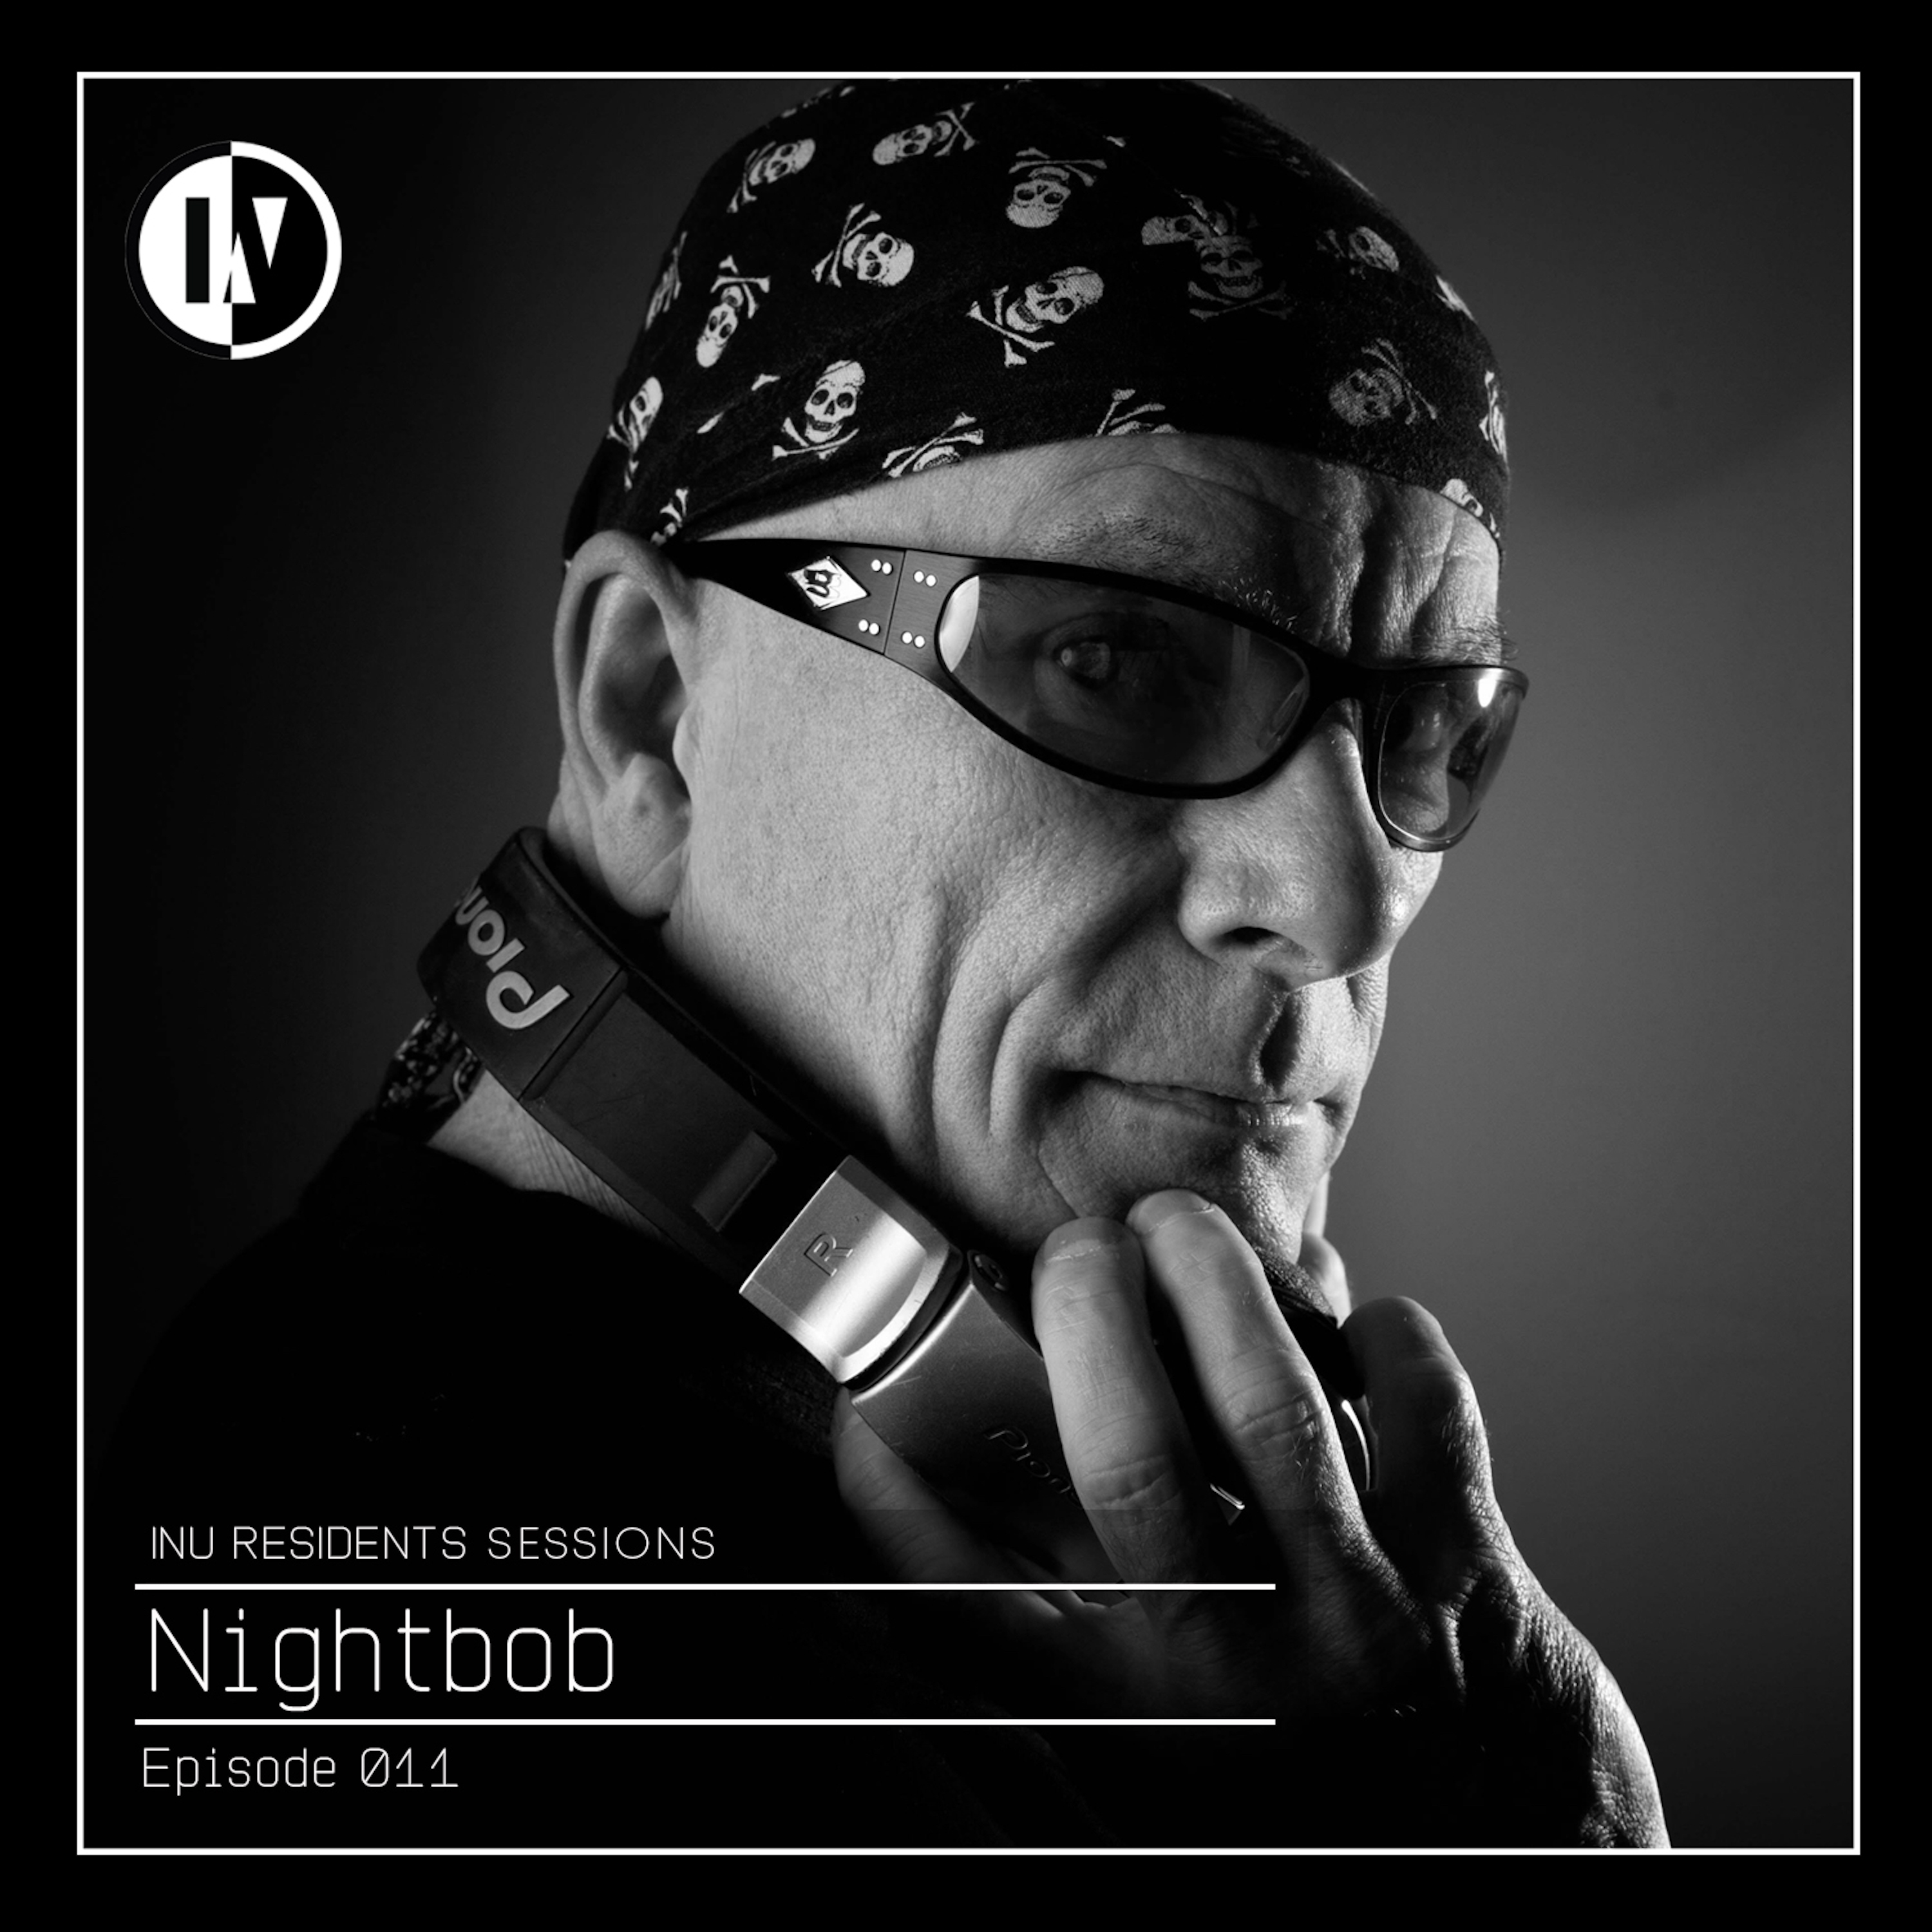 INU Residents Sessions 011 - Nightbob (from August 23rd, 2020)